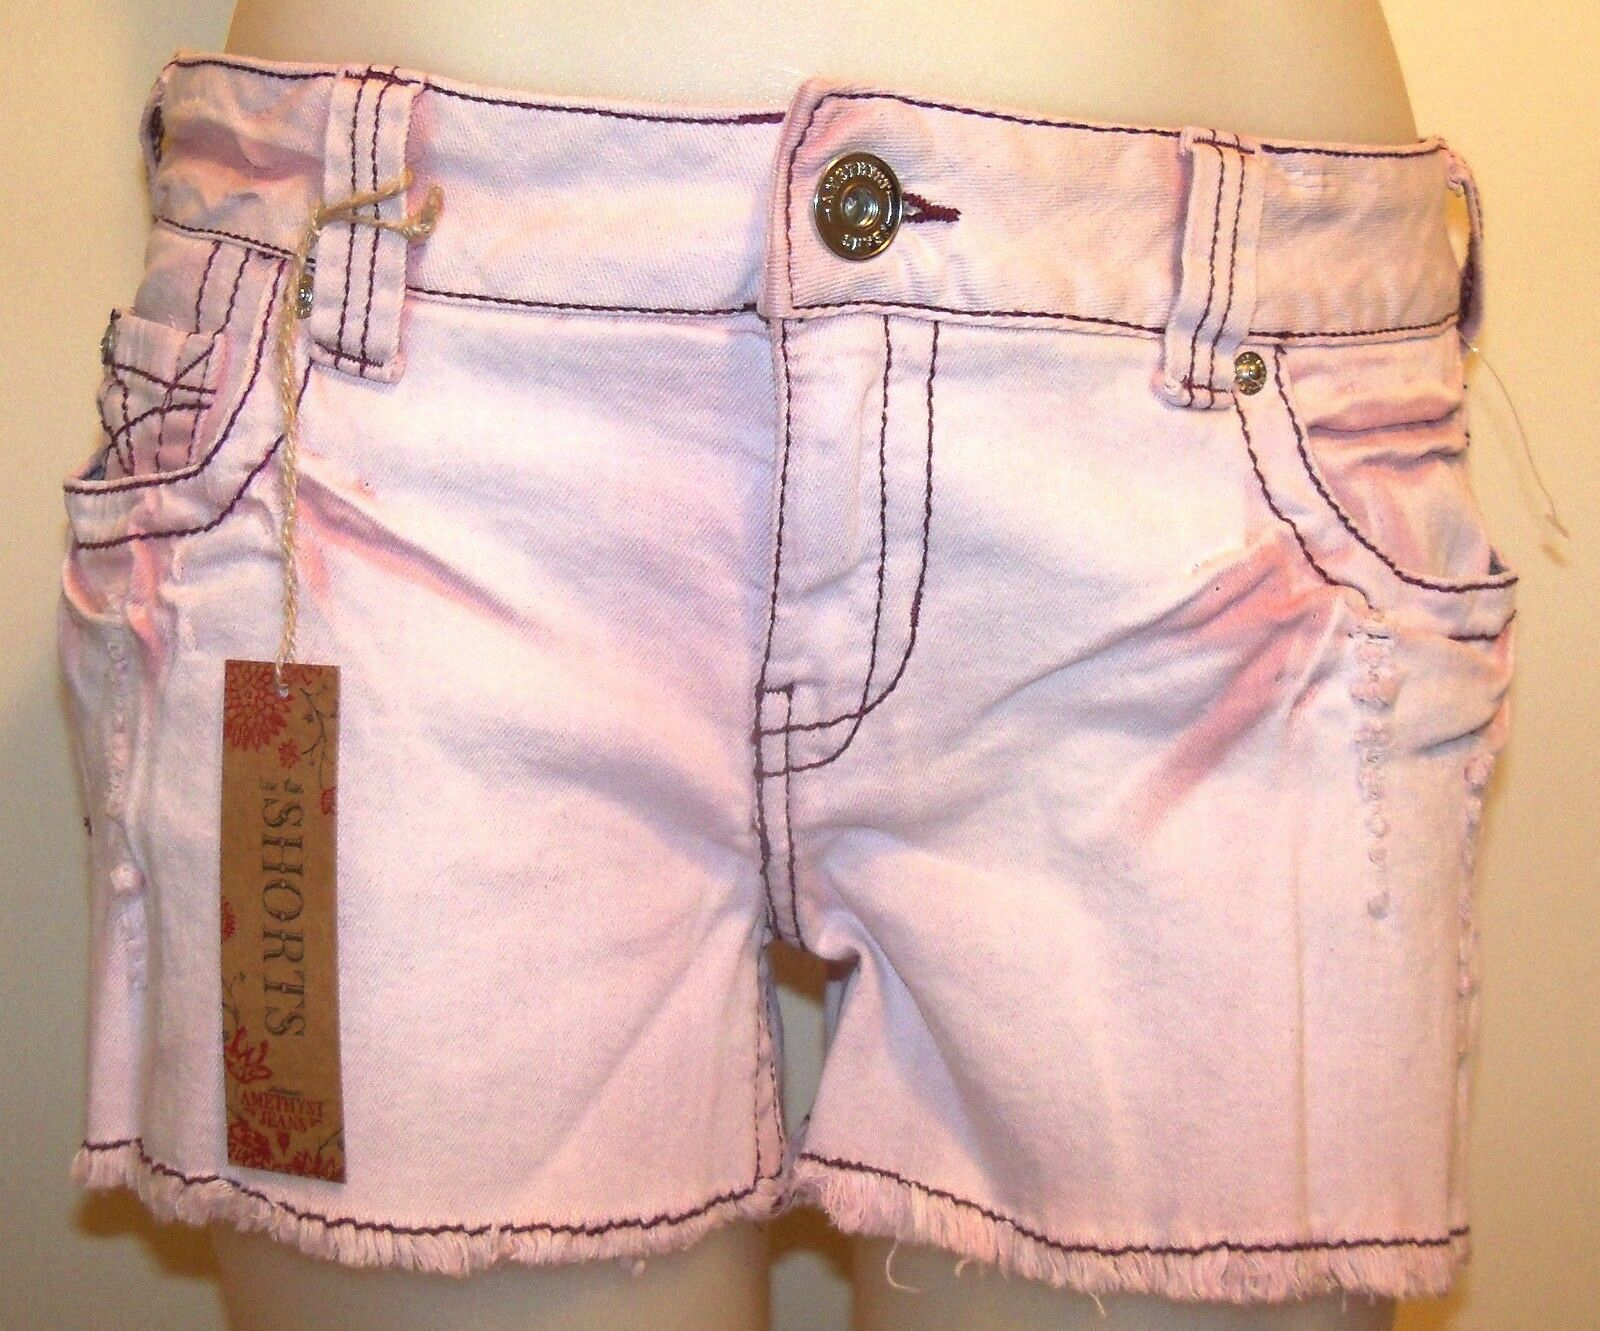 AMETHYST JEANS SZ 9 - SHORTS - BERRY - NWT - VERY CUTE